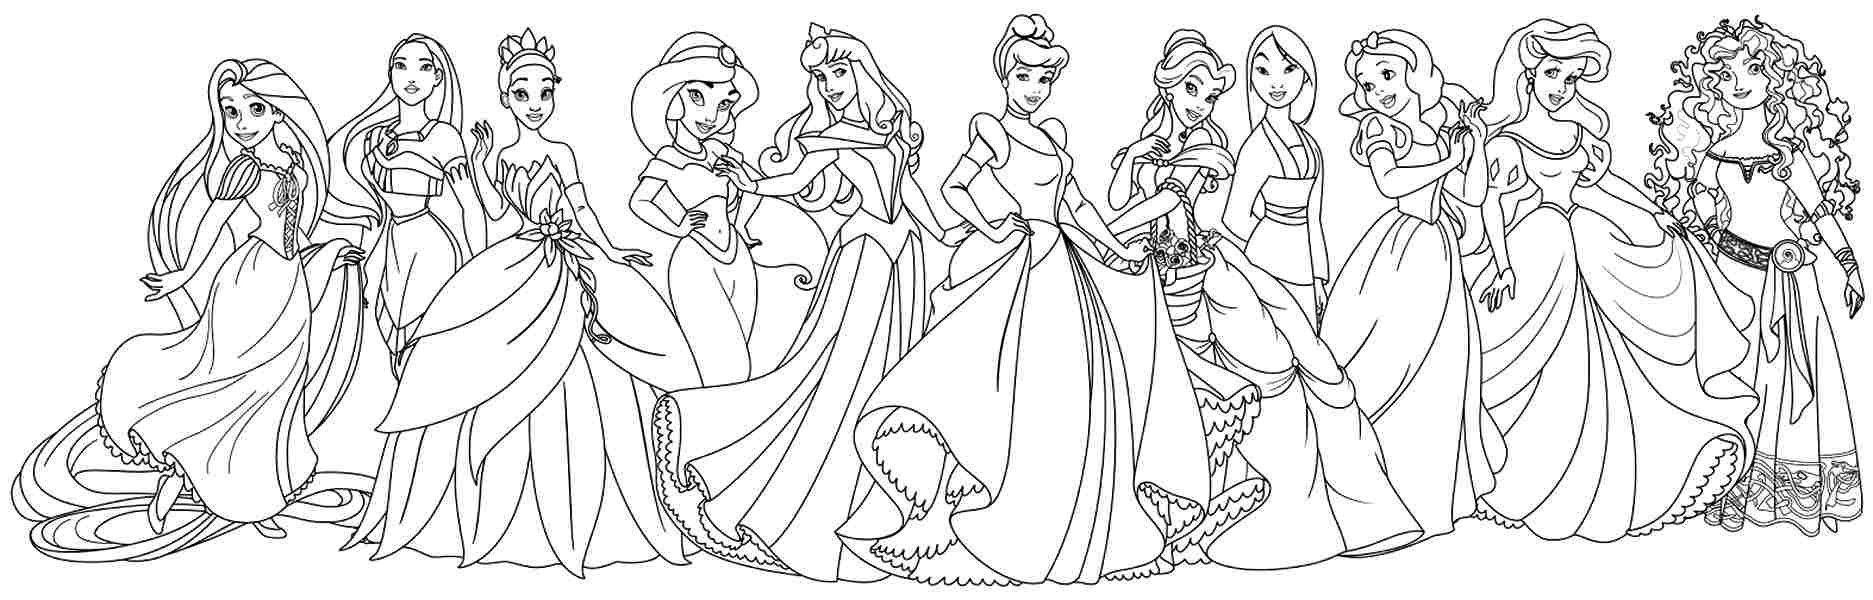 Download Coloring Pages  Coloring Pages Disney Princess  Coloring